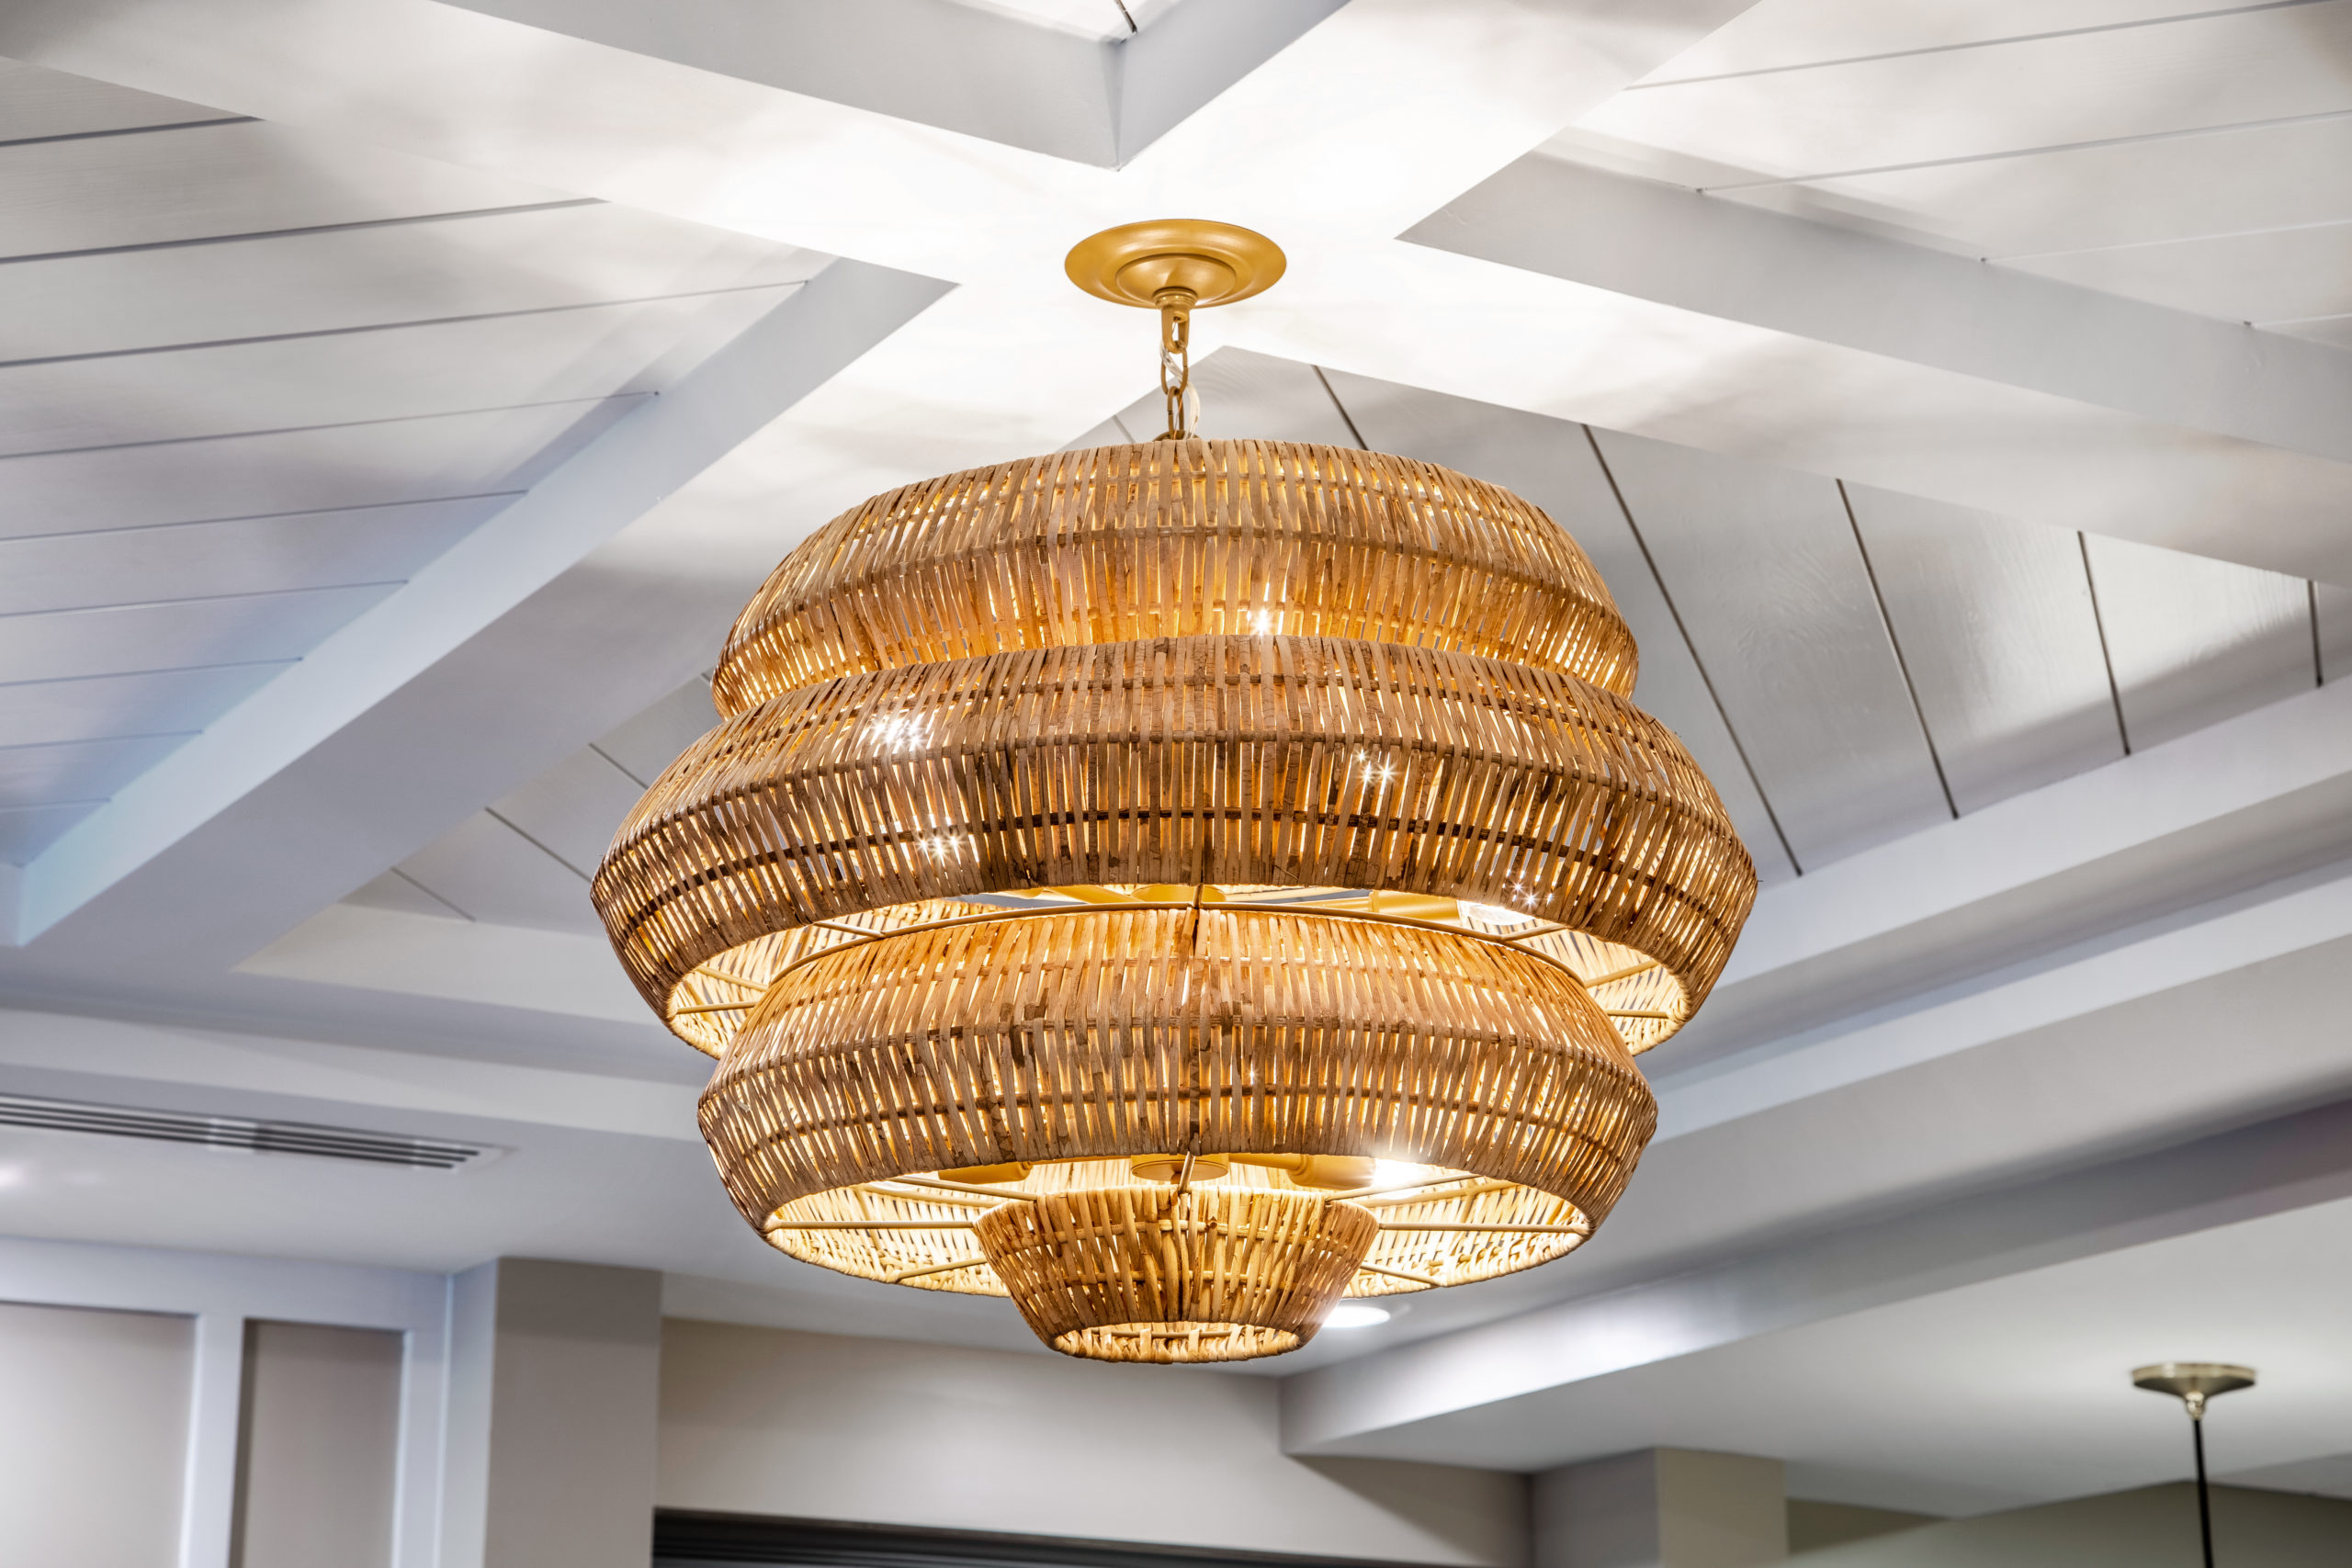 Basket weave like light fixture hanging from white wooden ceiling in Longleaf common space